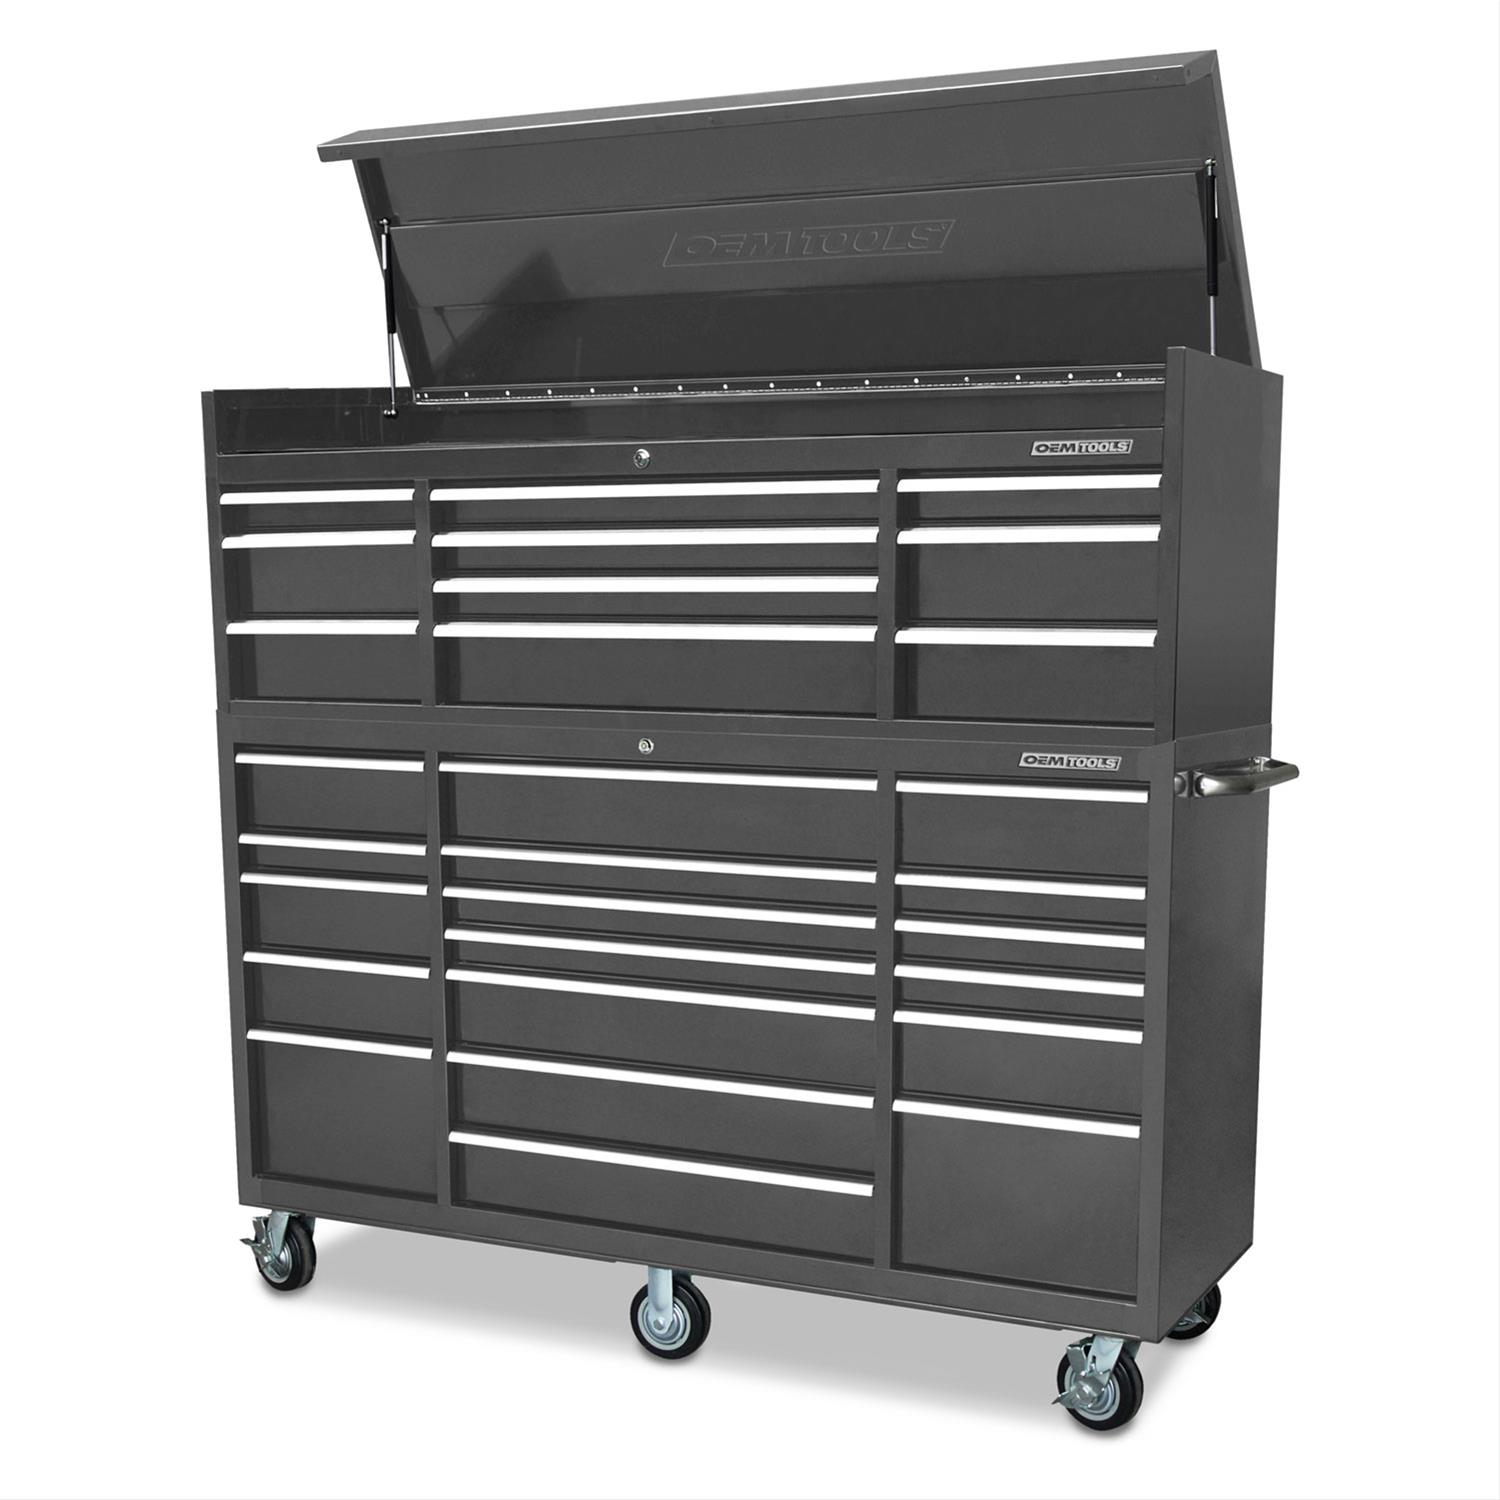 Oem Specialty Tools 24626  Drawer Chest And Cabinet Combo Gnm